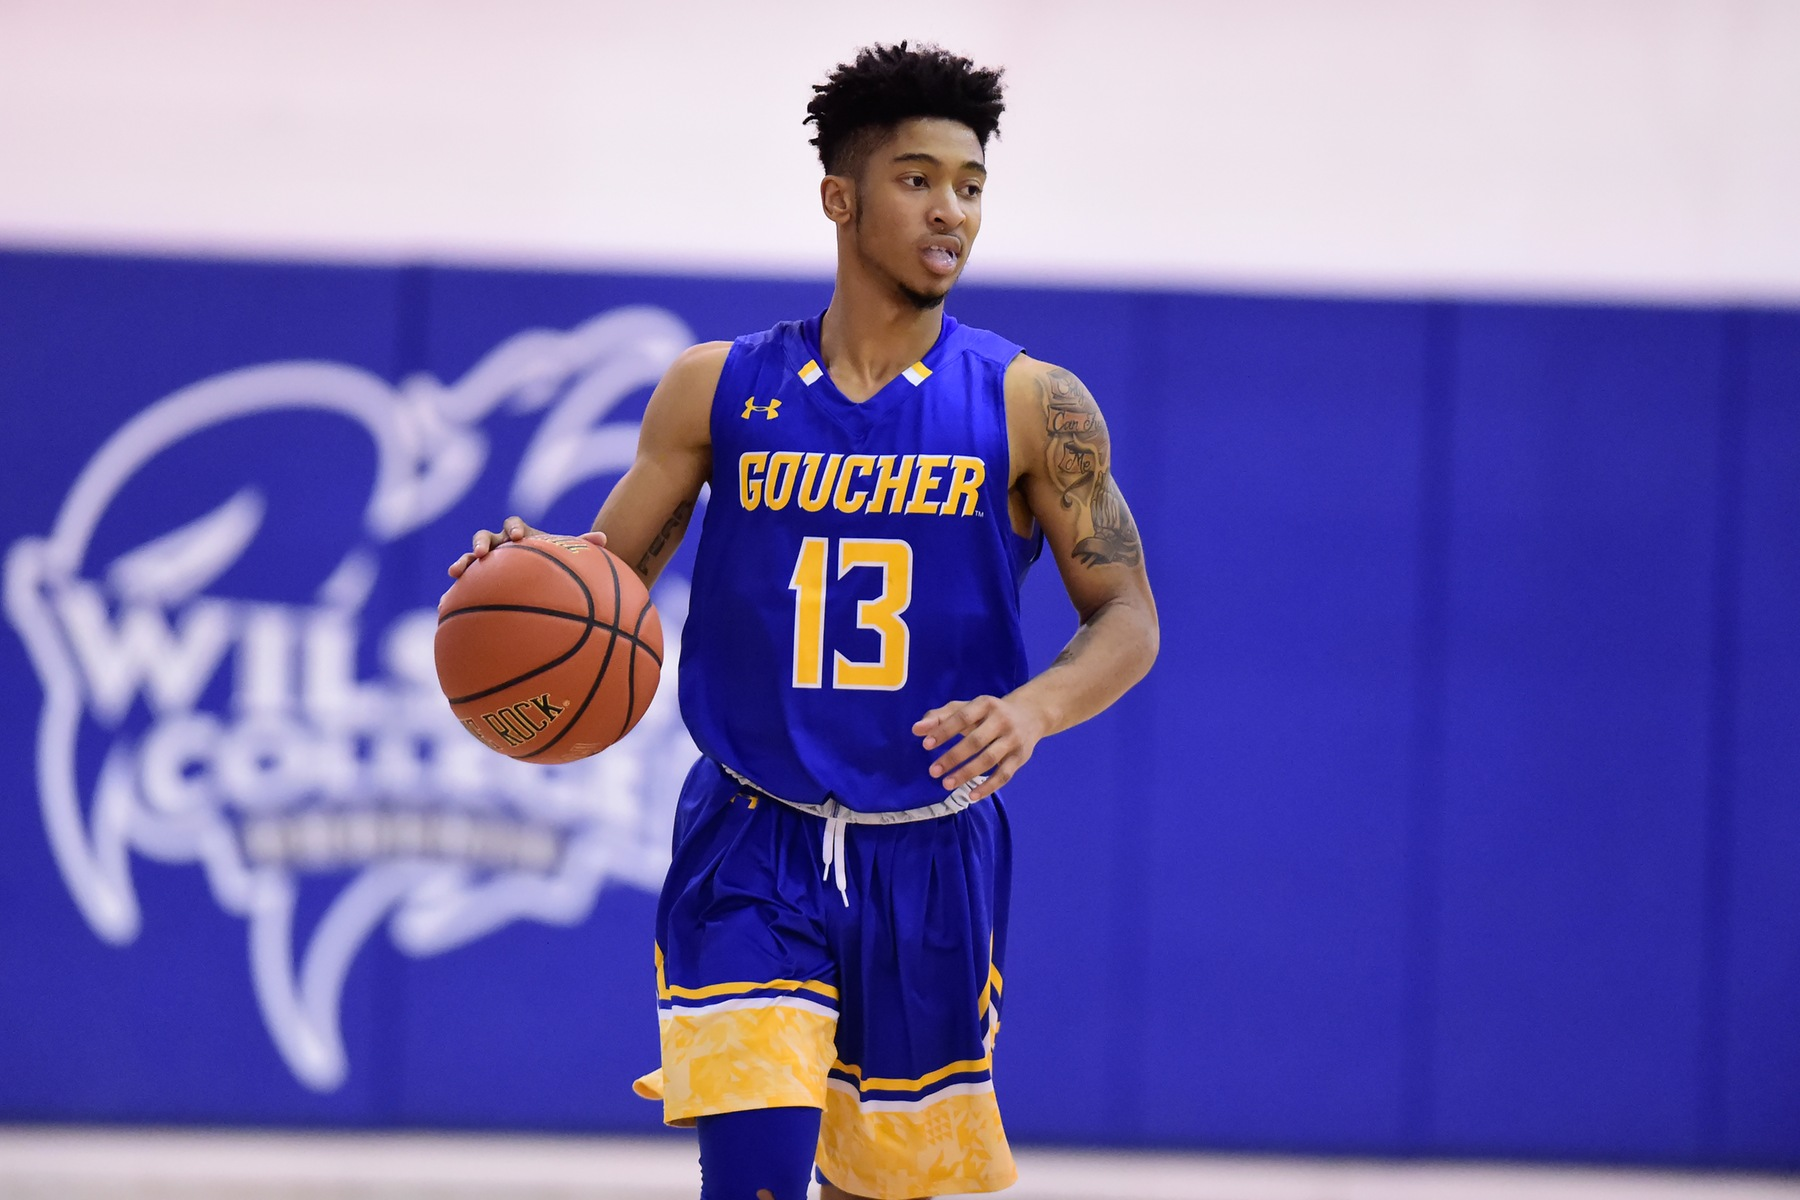 Goucher Men's Basketball Begins Three-Game Homestand Against Juniata On Wednesday